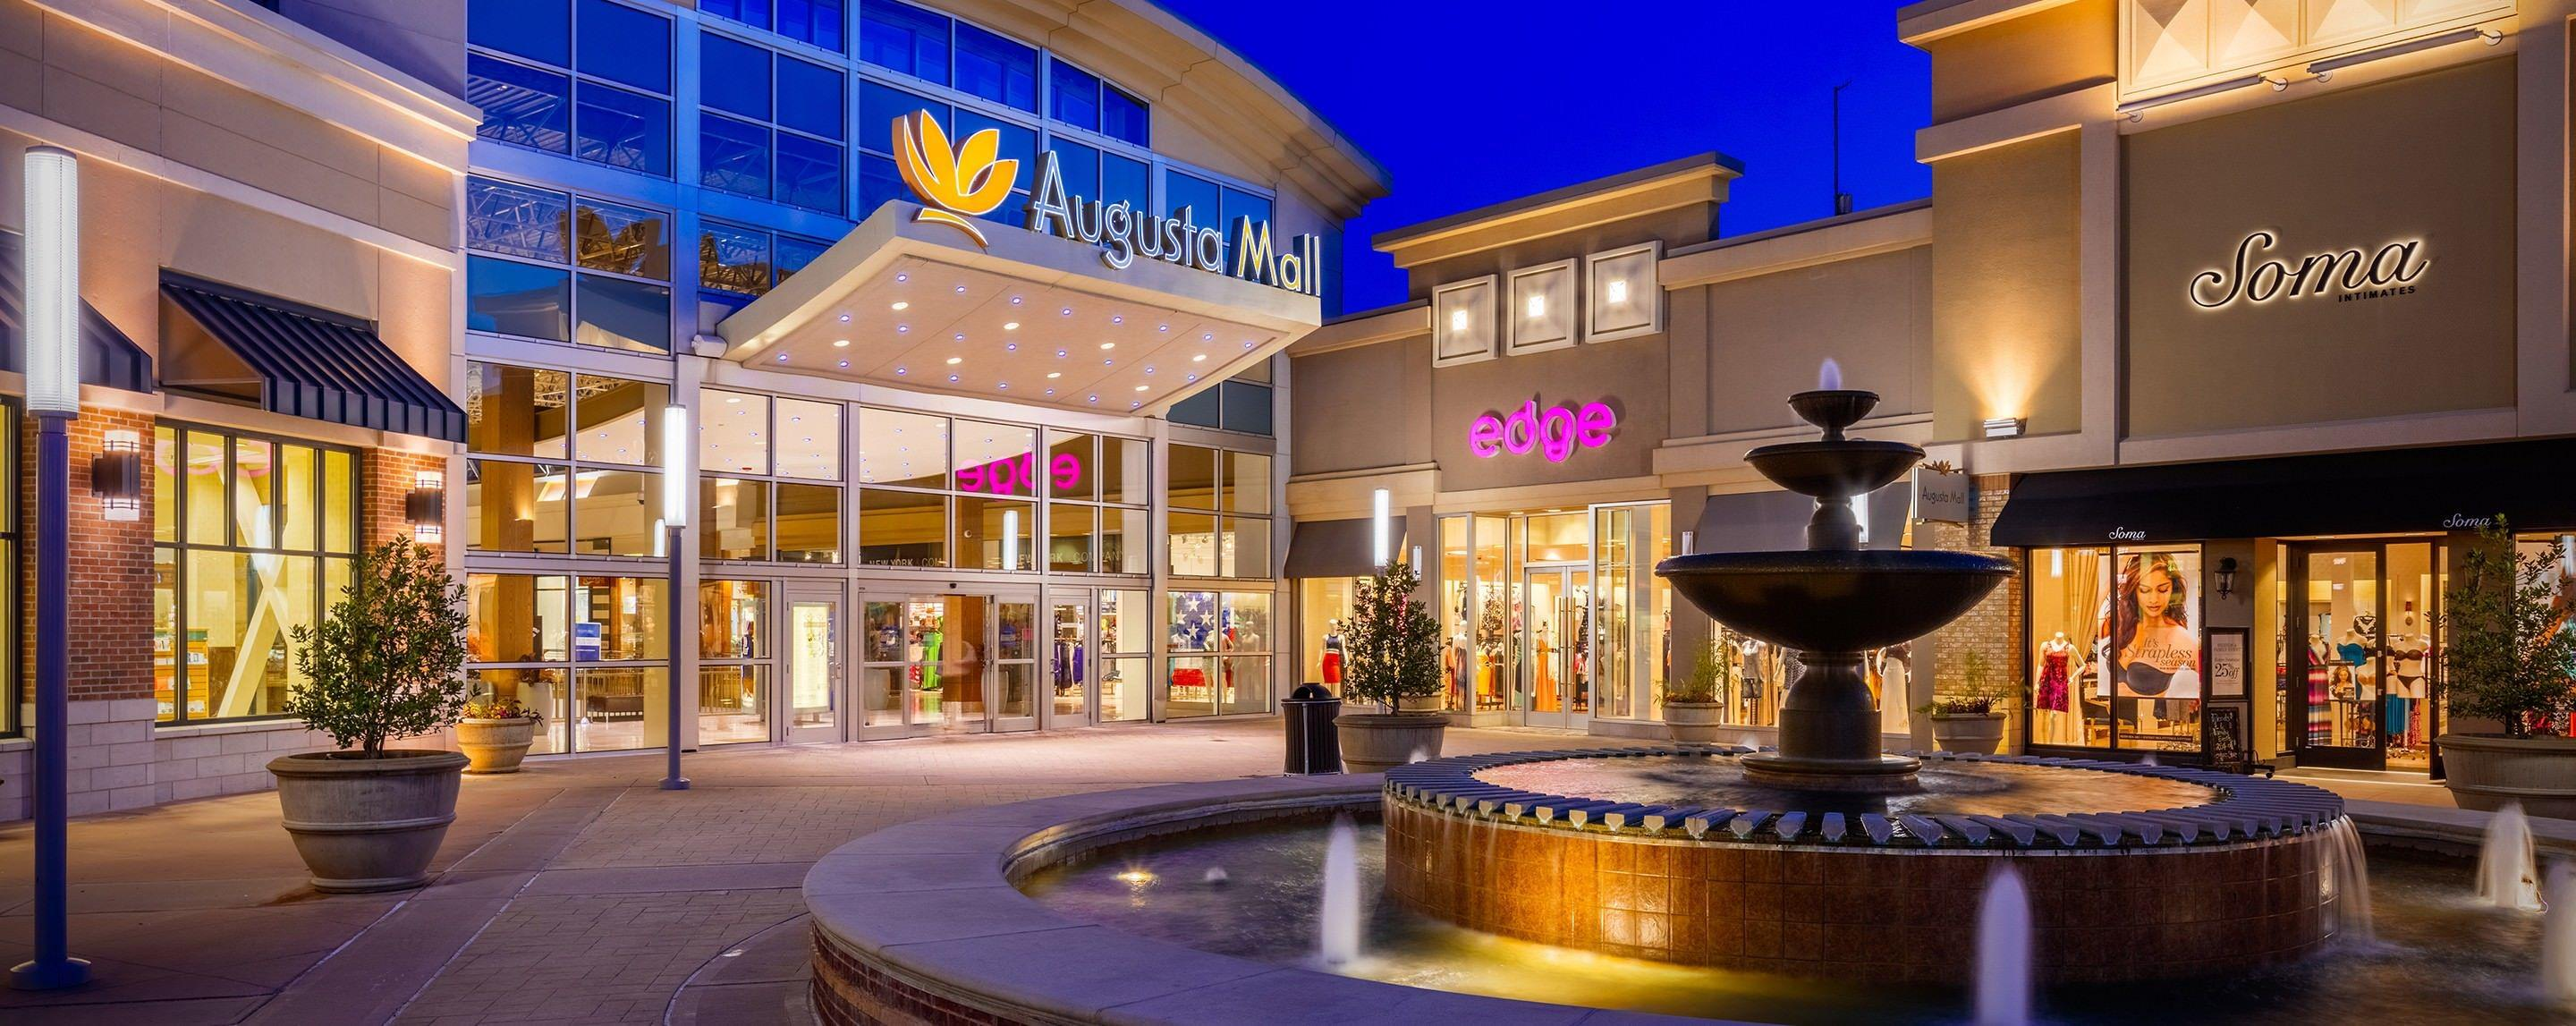 The exterior of the Augusta Mall entrance at night with a running fountain, store fronts, and potted trees.